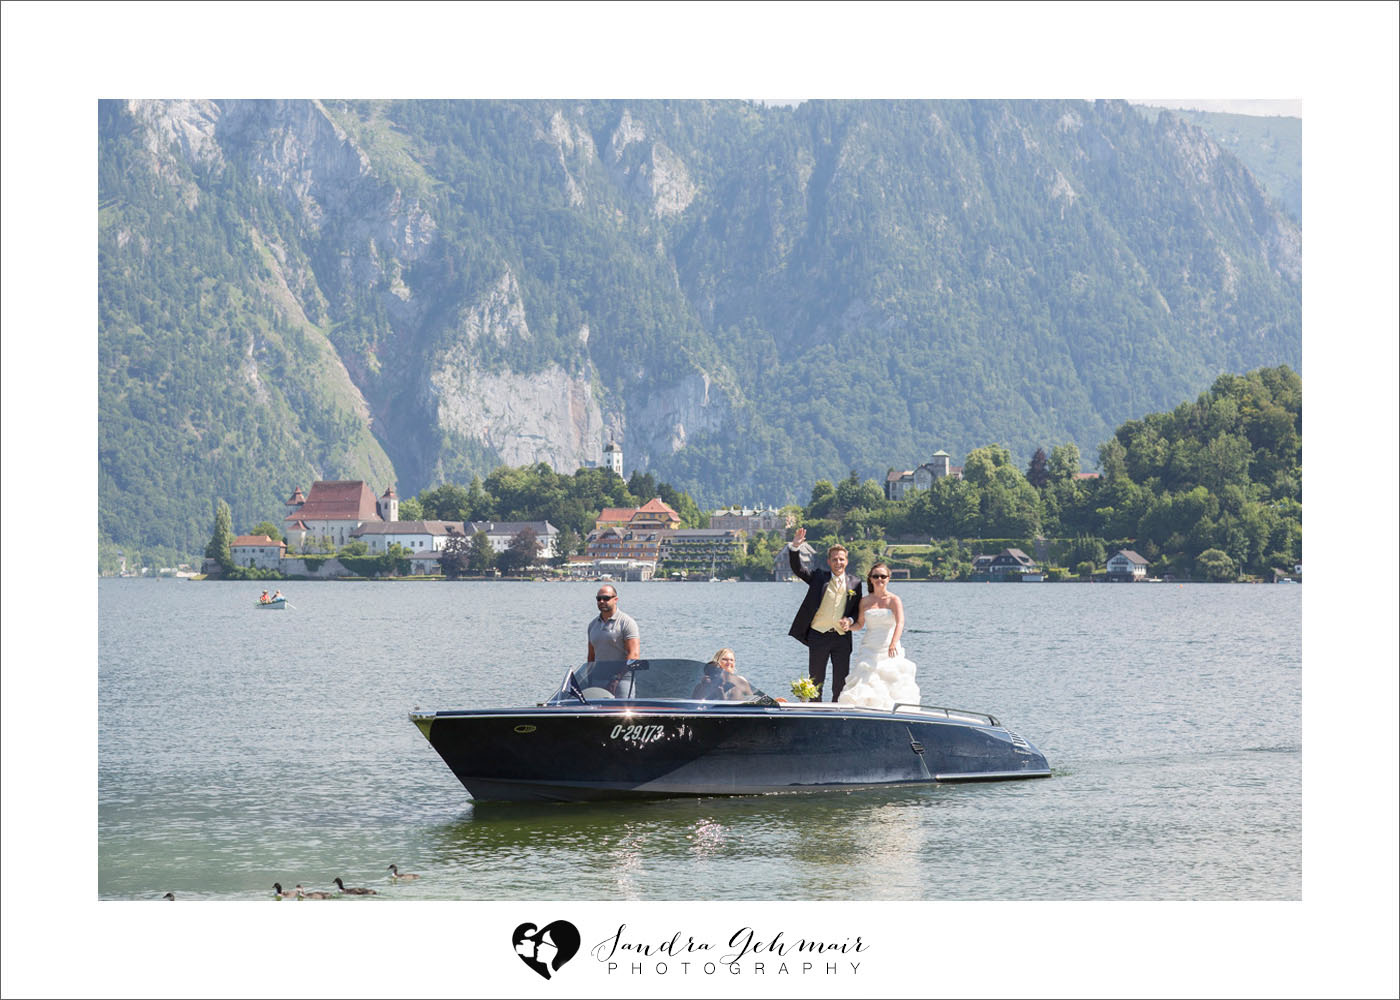 012_heiraten_am_see_spitzvilla_sandra_gehmair